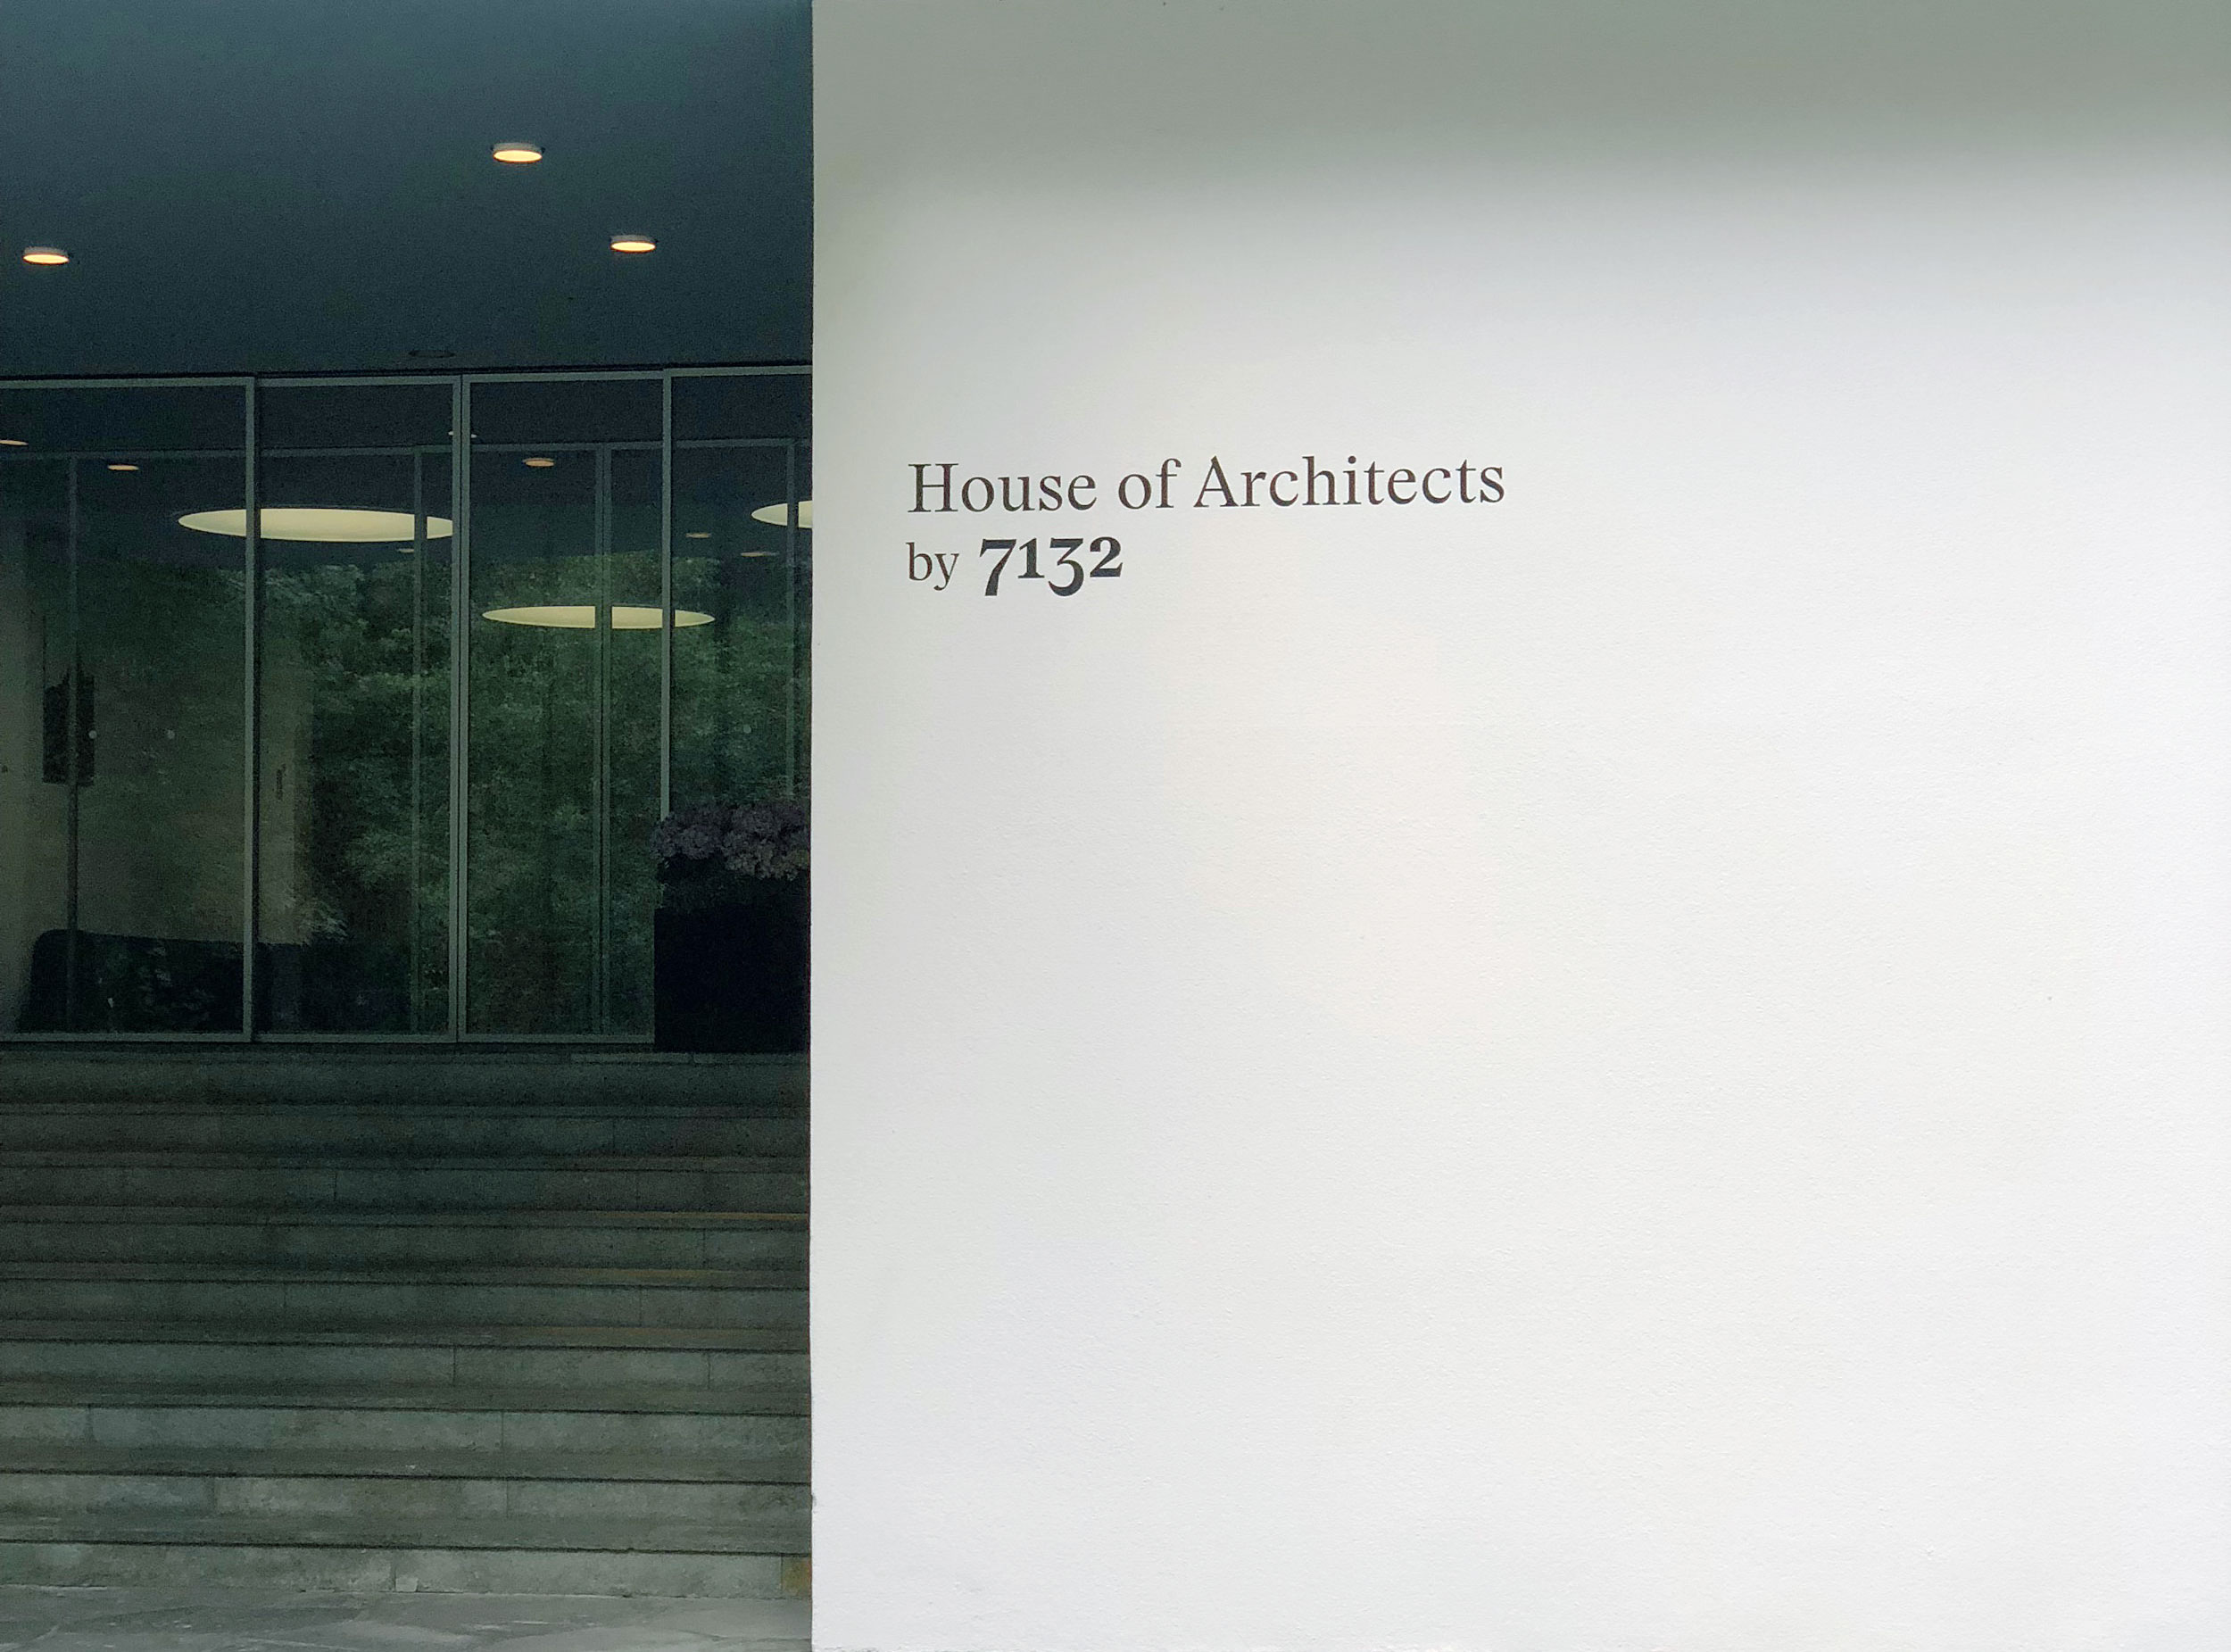 house-of-architects-entry.jpg